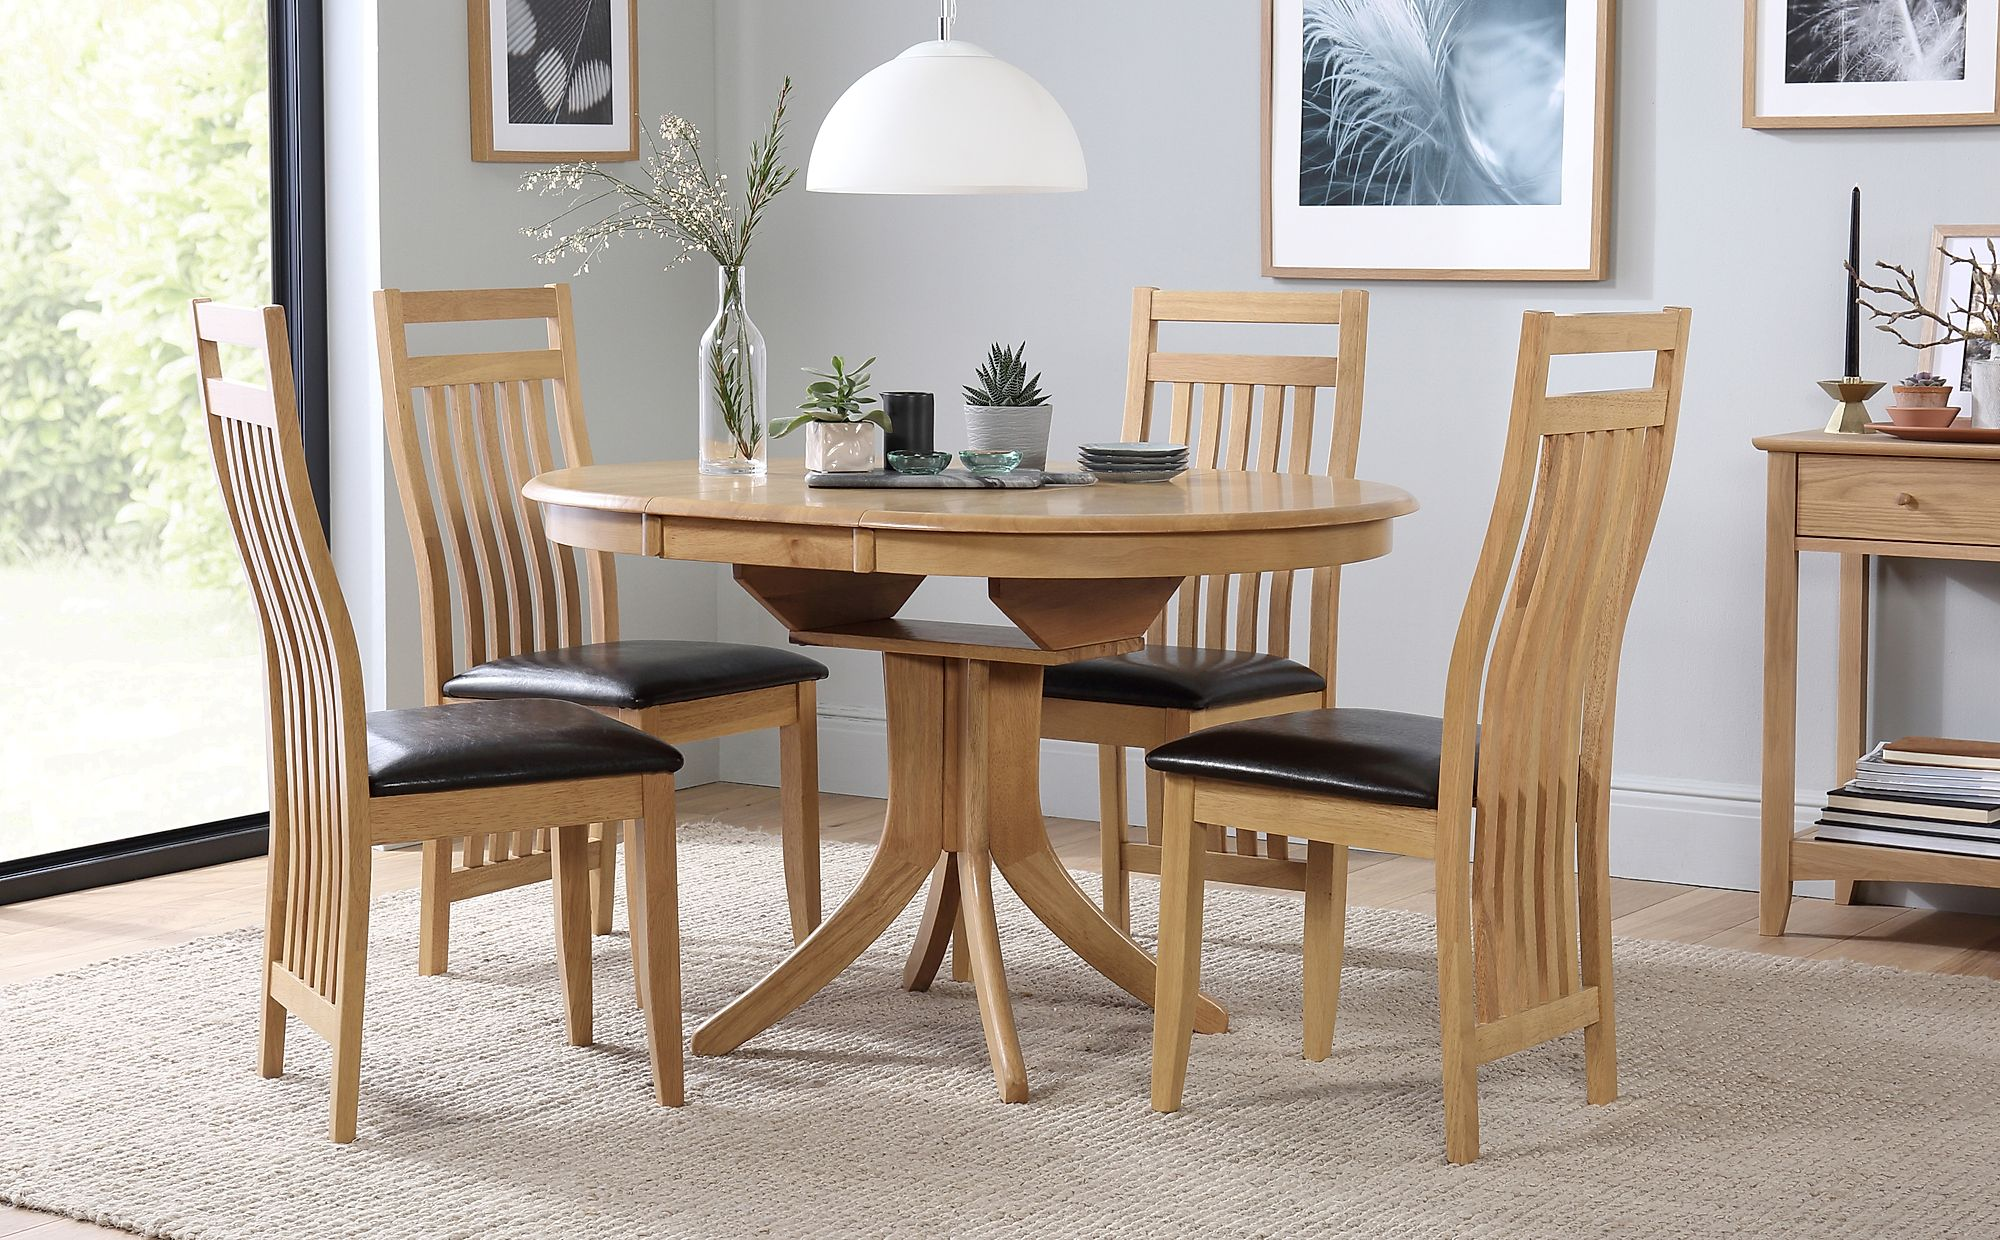 Hudson Round Oak Extending Dining Table with 4 Bali Chairs ...